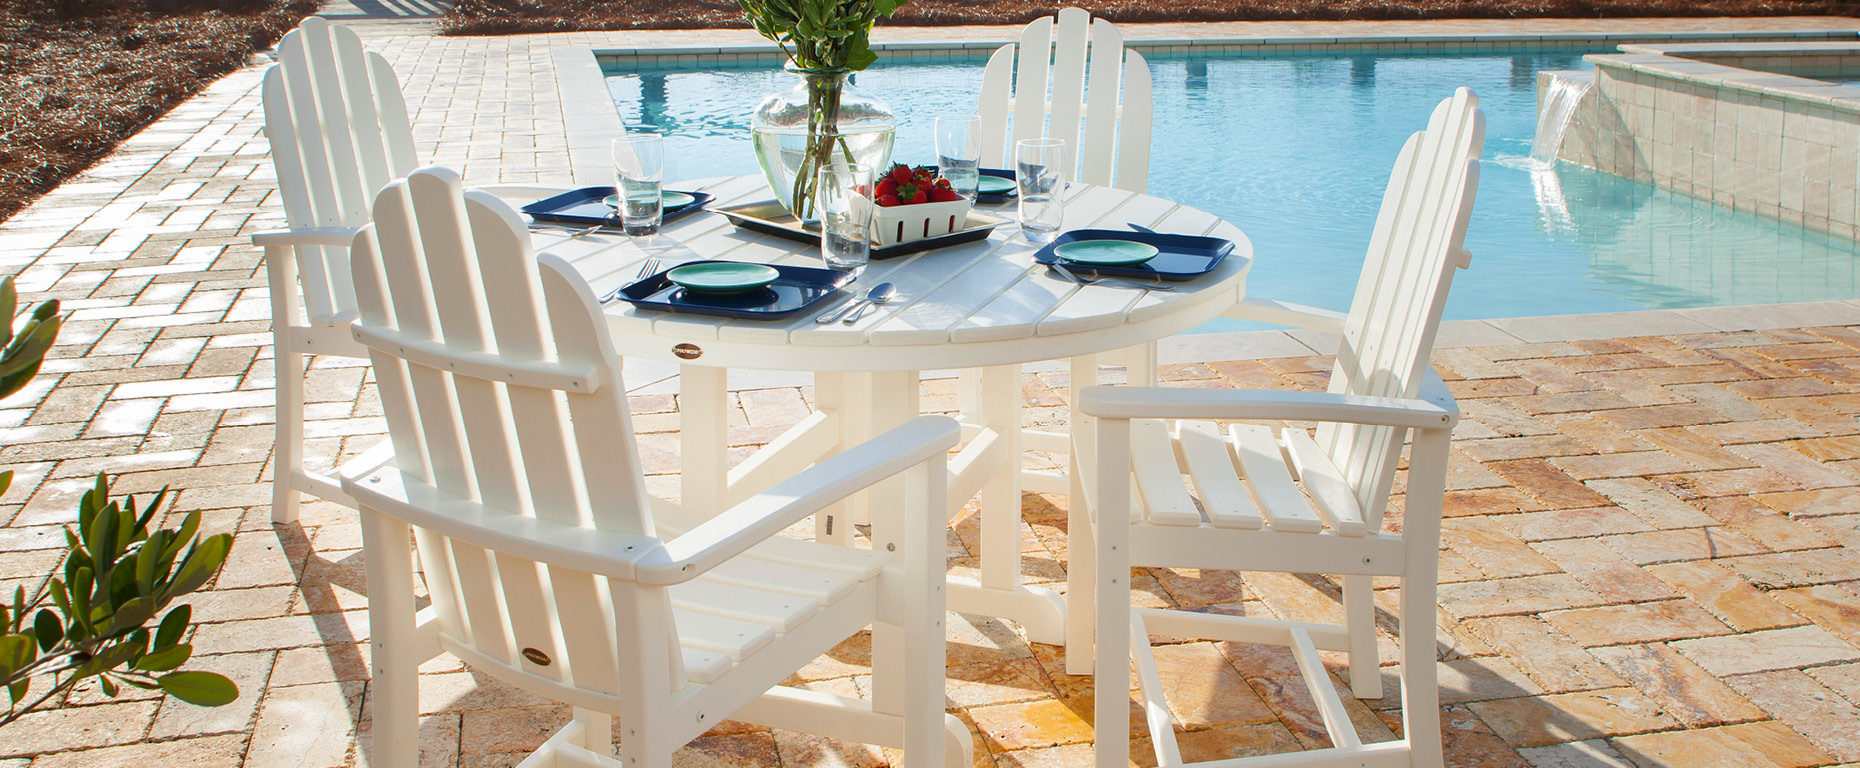 The Complete Guide To Buying An Outdoor Dining Set